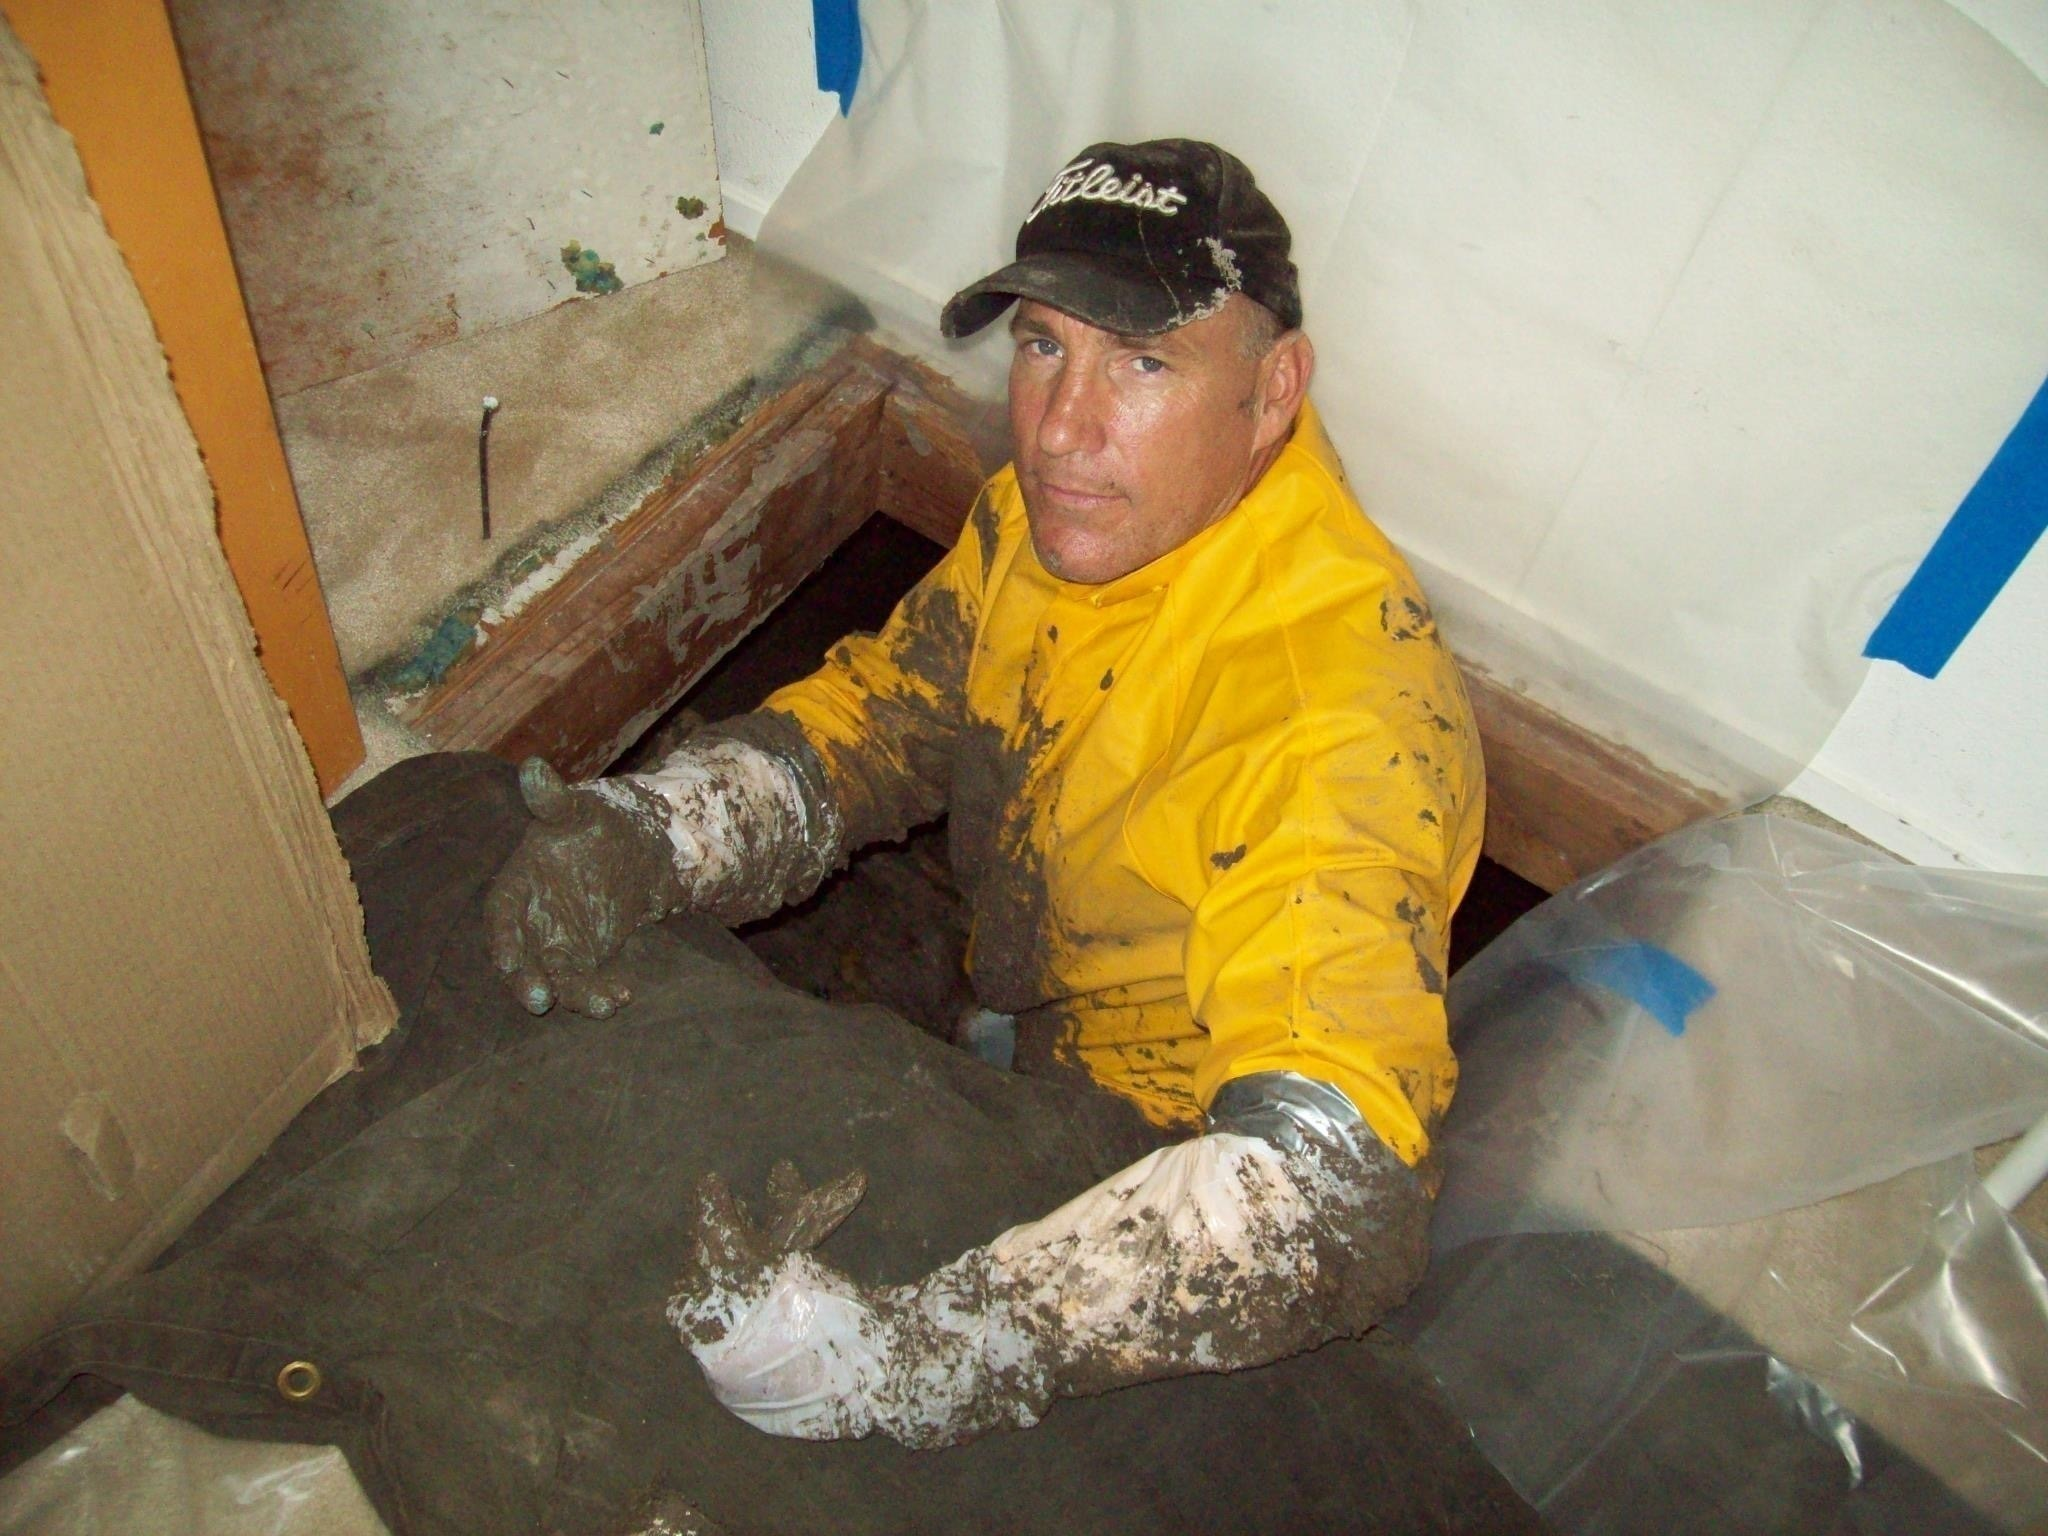 Plumber Mike Lewis Owner Action Plumbing and Rooter